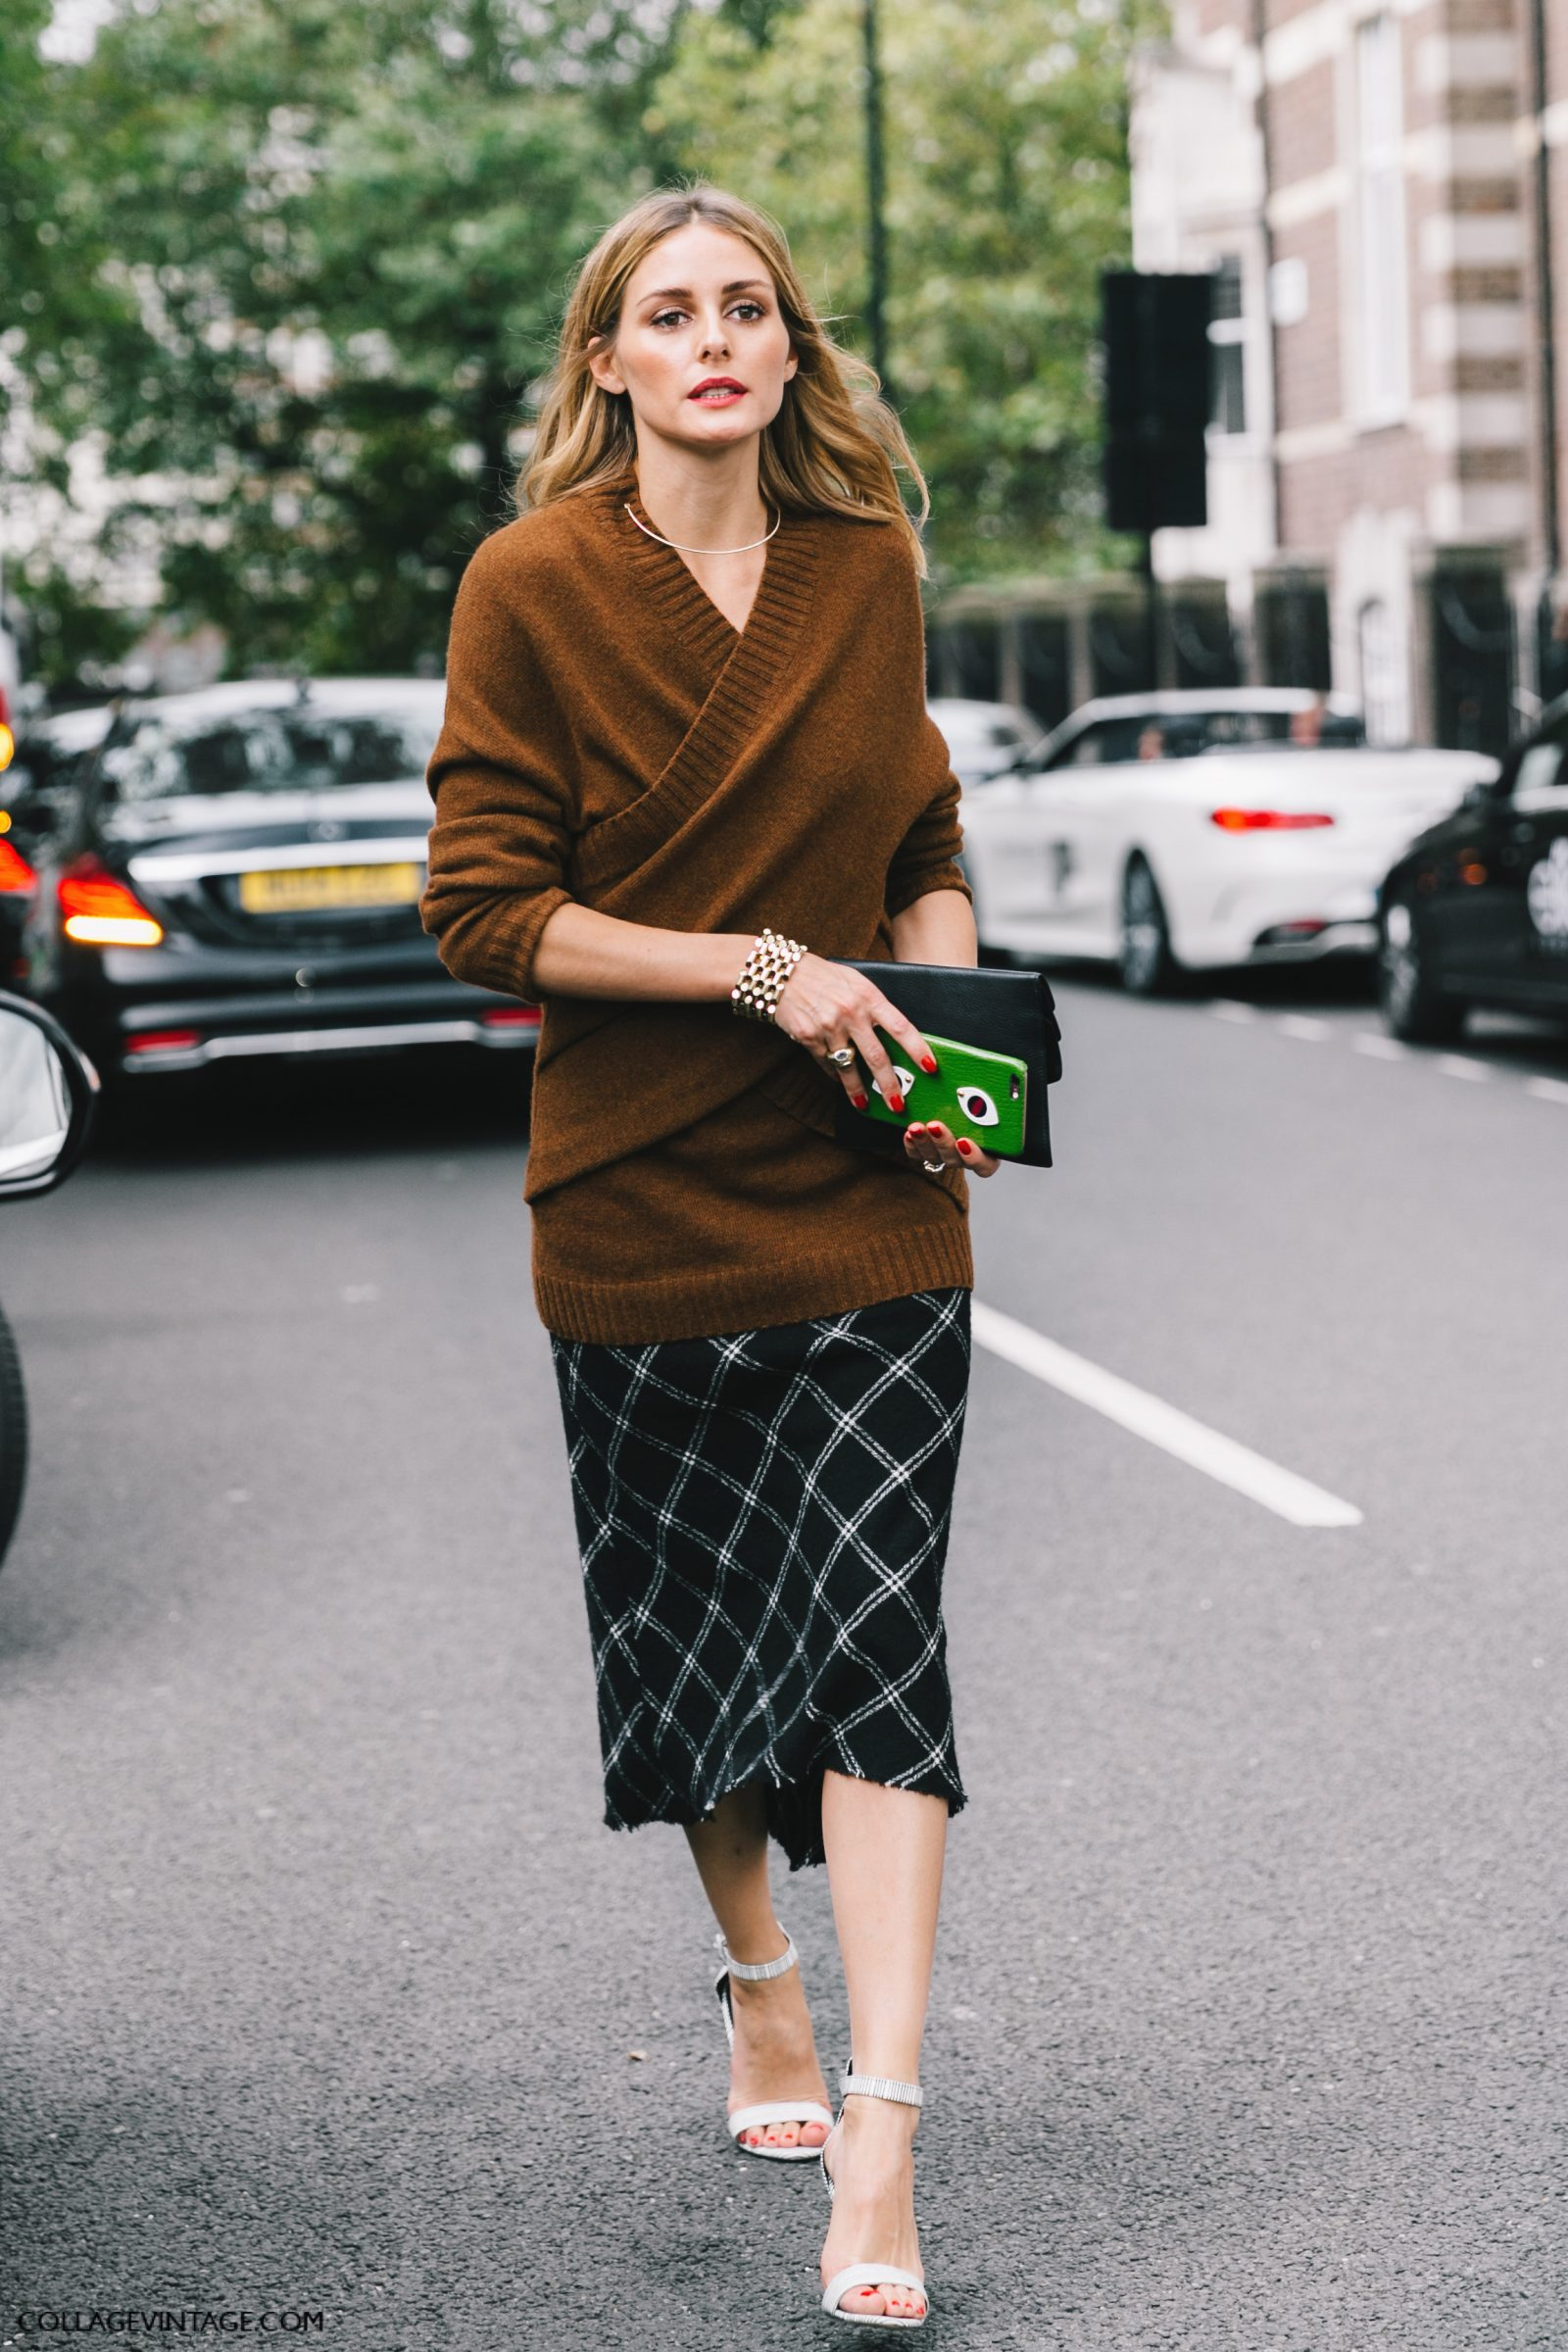 lfw-london_fashion_week_ss17-street_style-outfits-collage_vintage-vintage-roksanda-christopher_kane-joseph-153